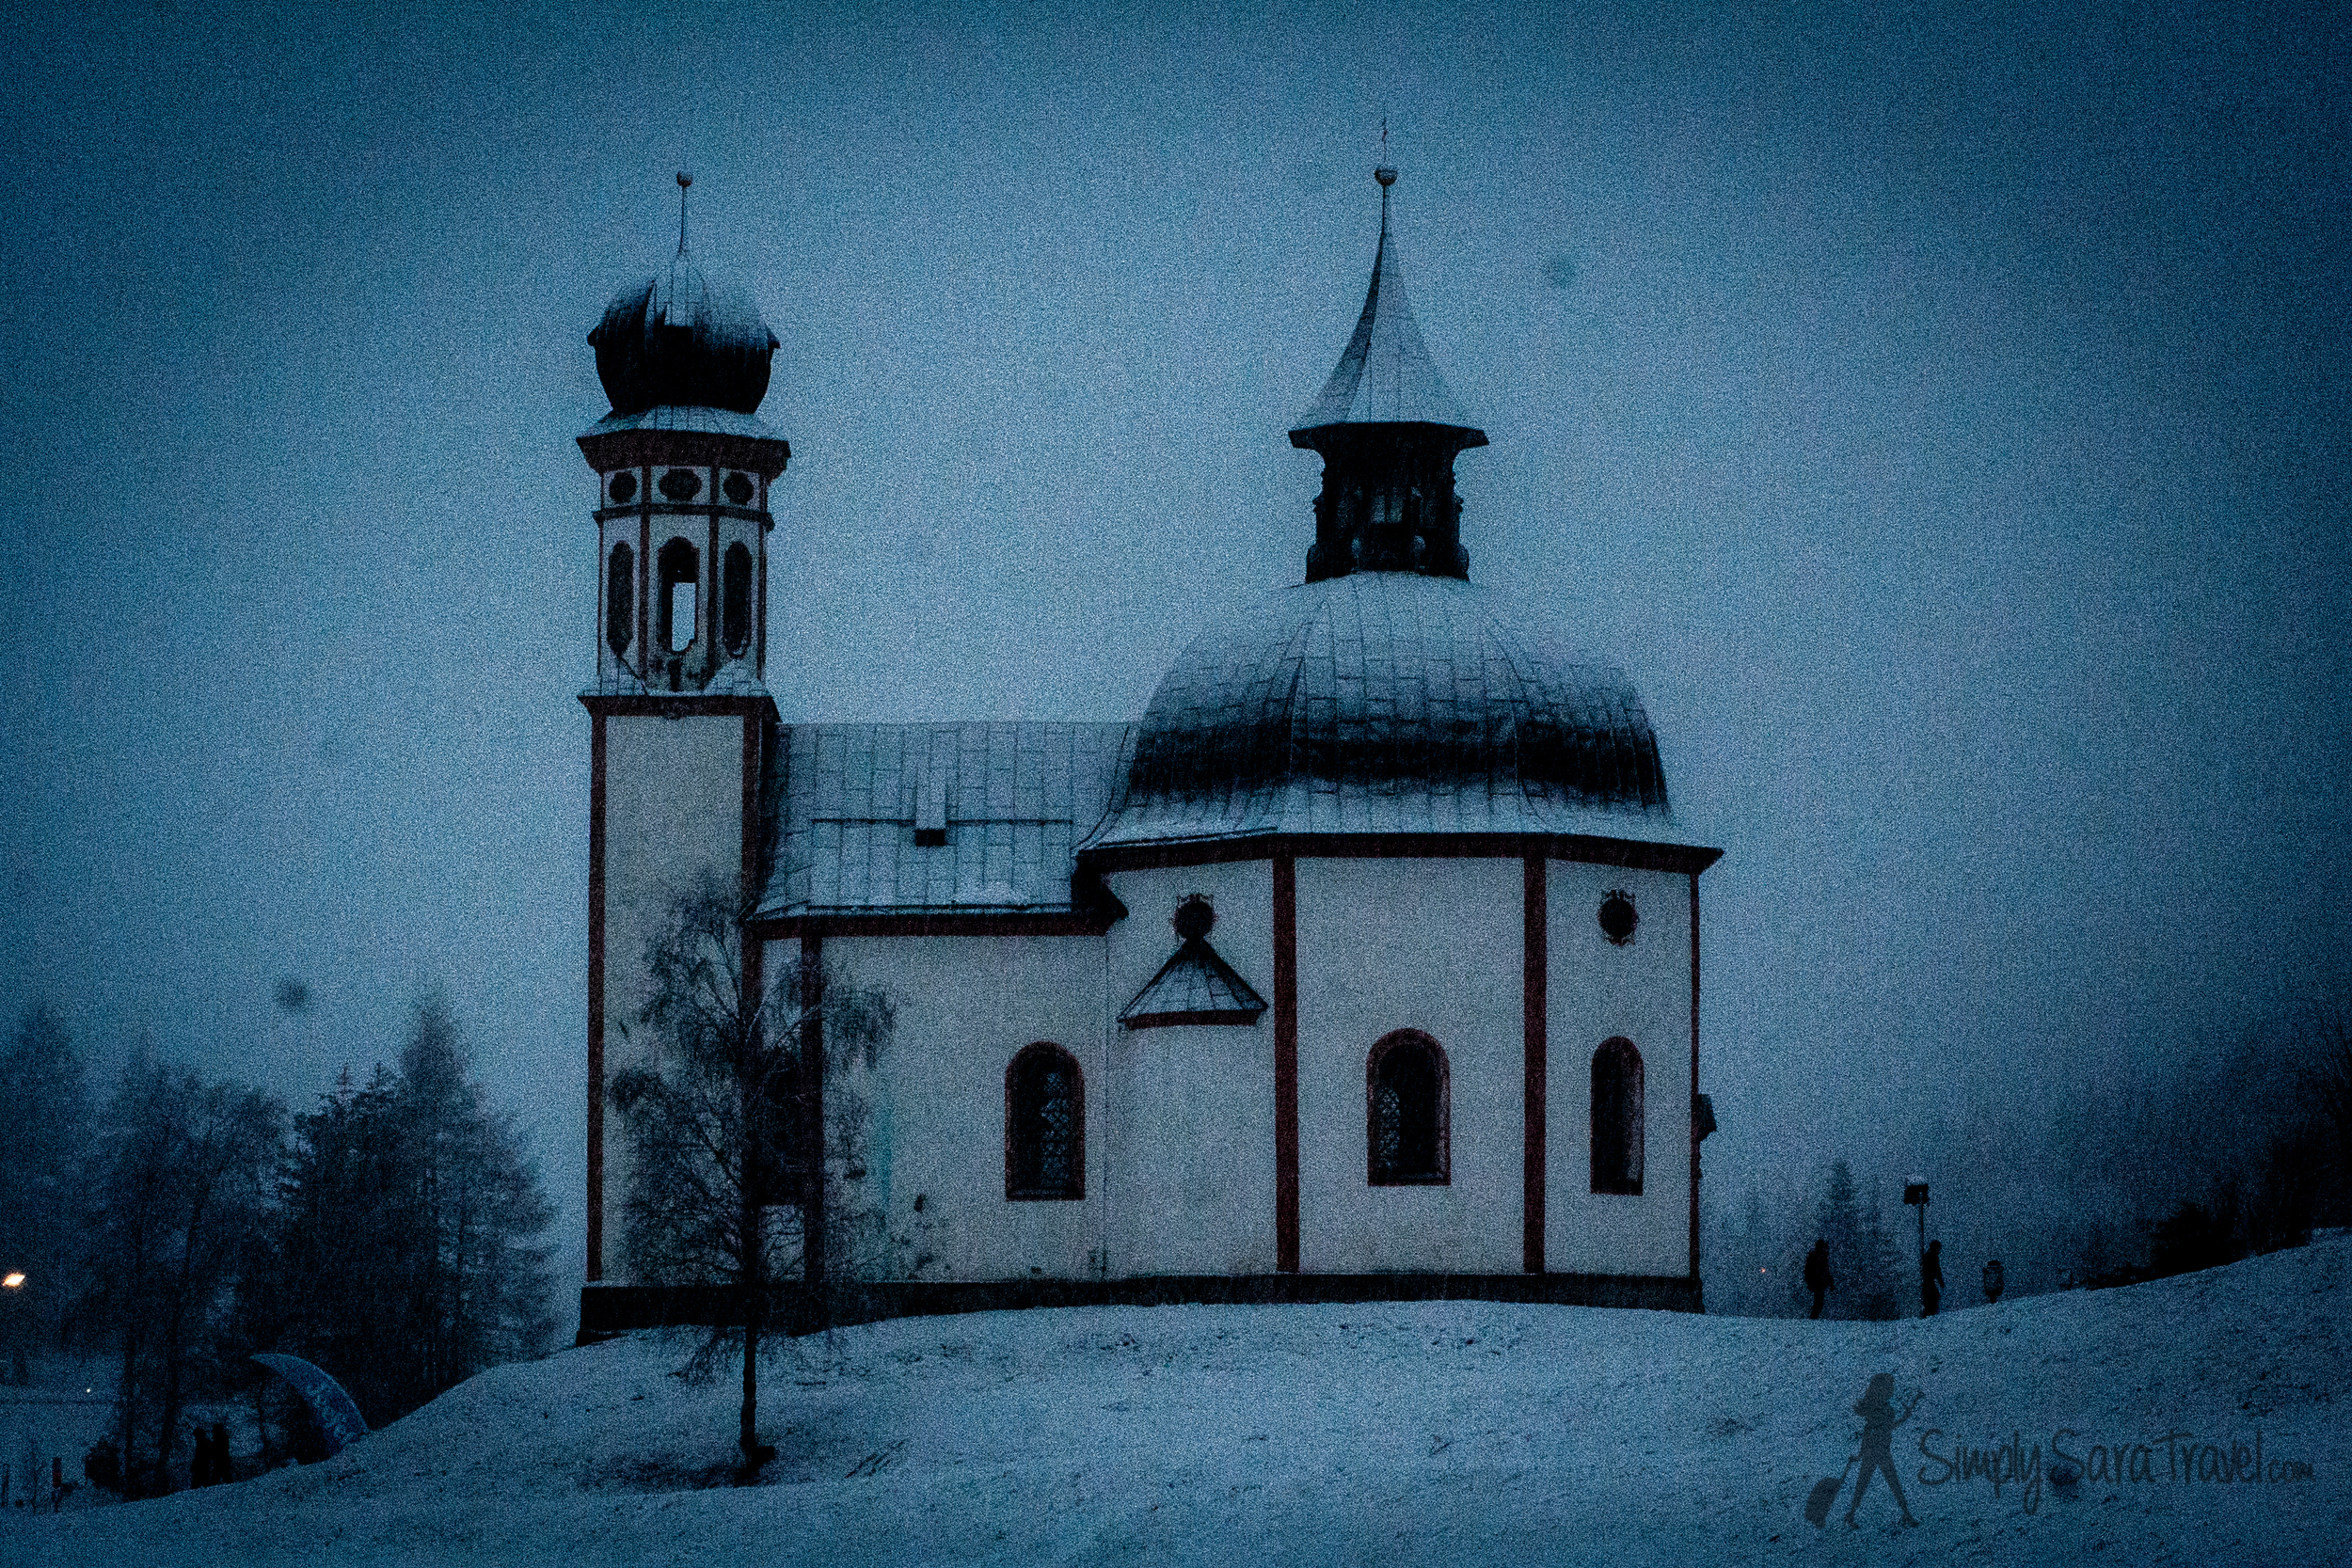 As if Seefeld wasn't beautiful enough, the snowfall on the last night made it all the more magical. (December 2013)